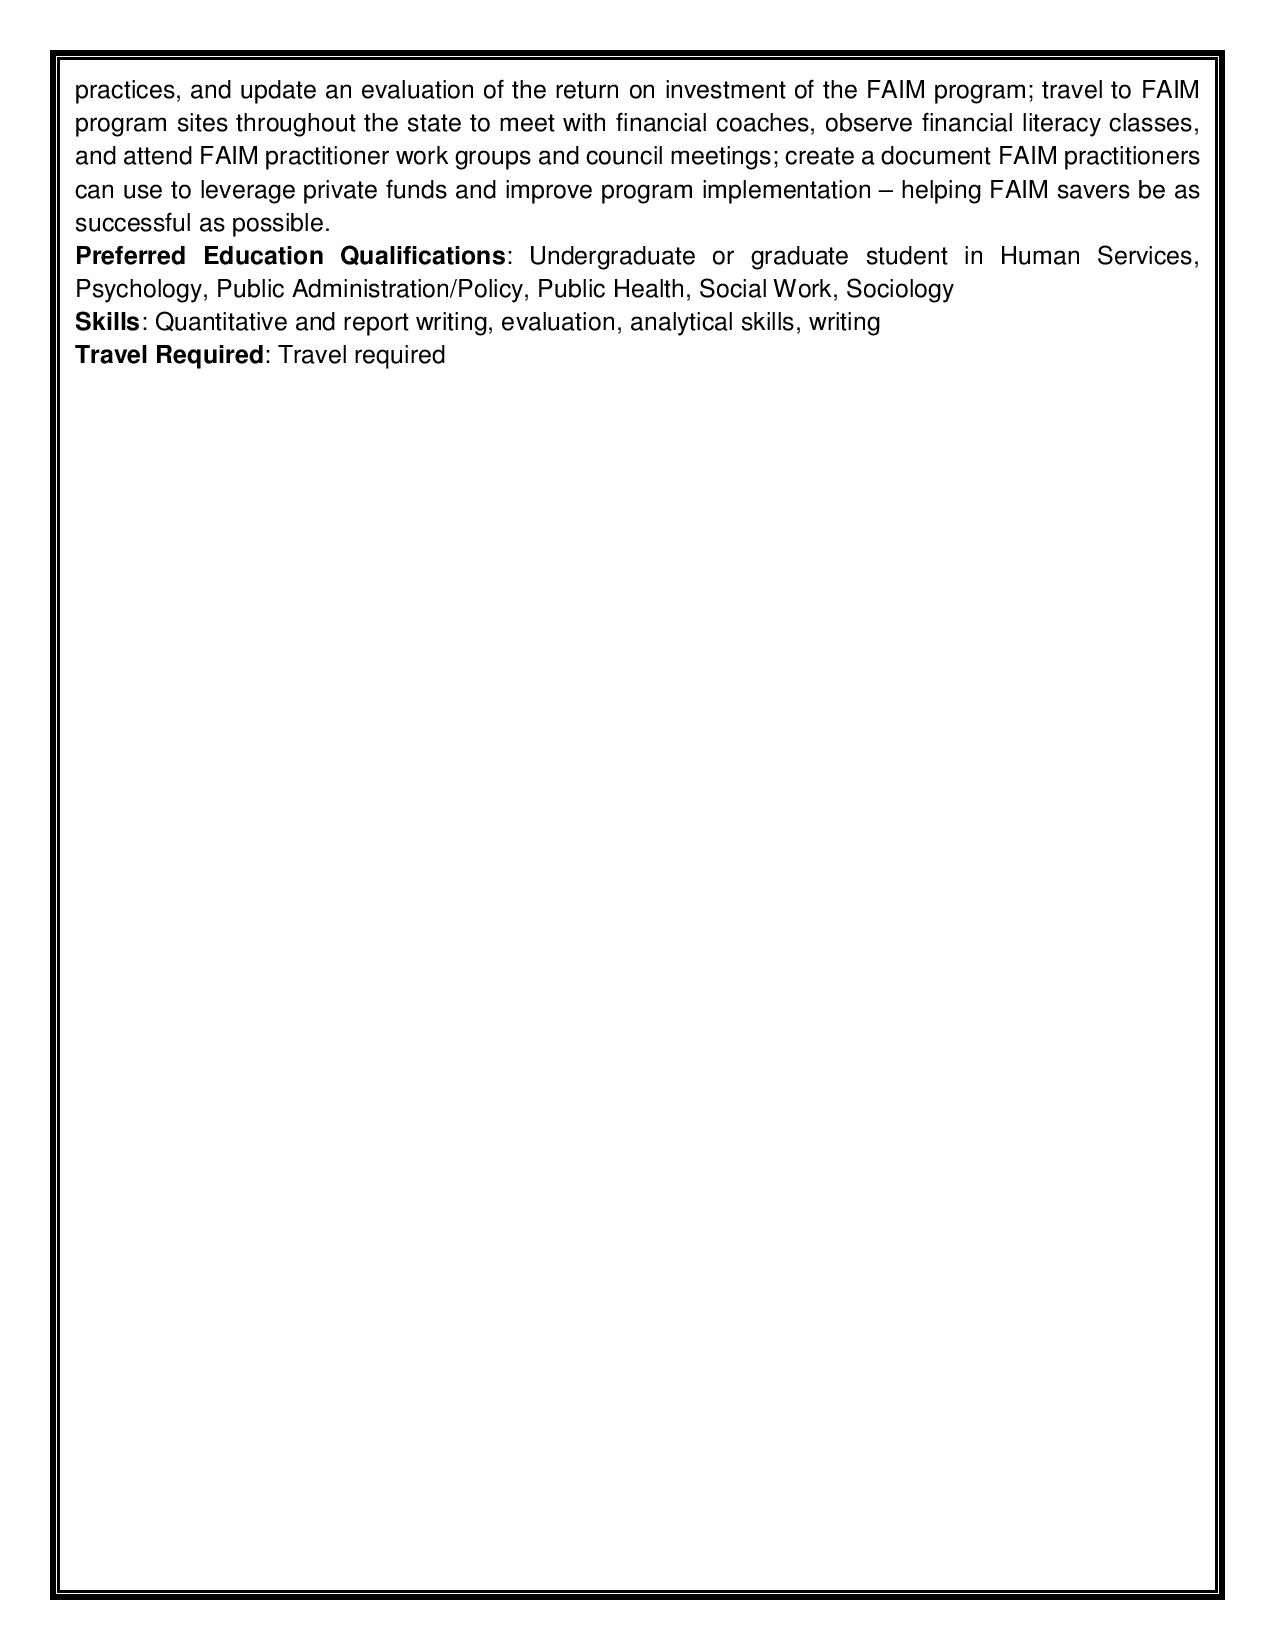 Minnesota-DHS-Internship-Program-page-004.jpg